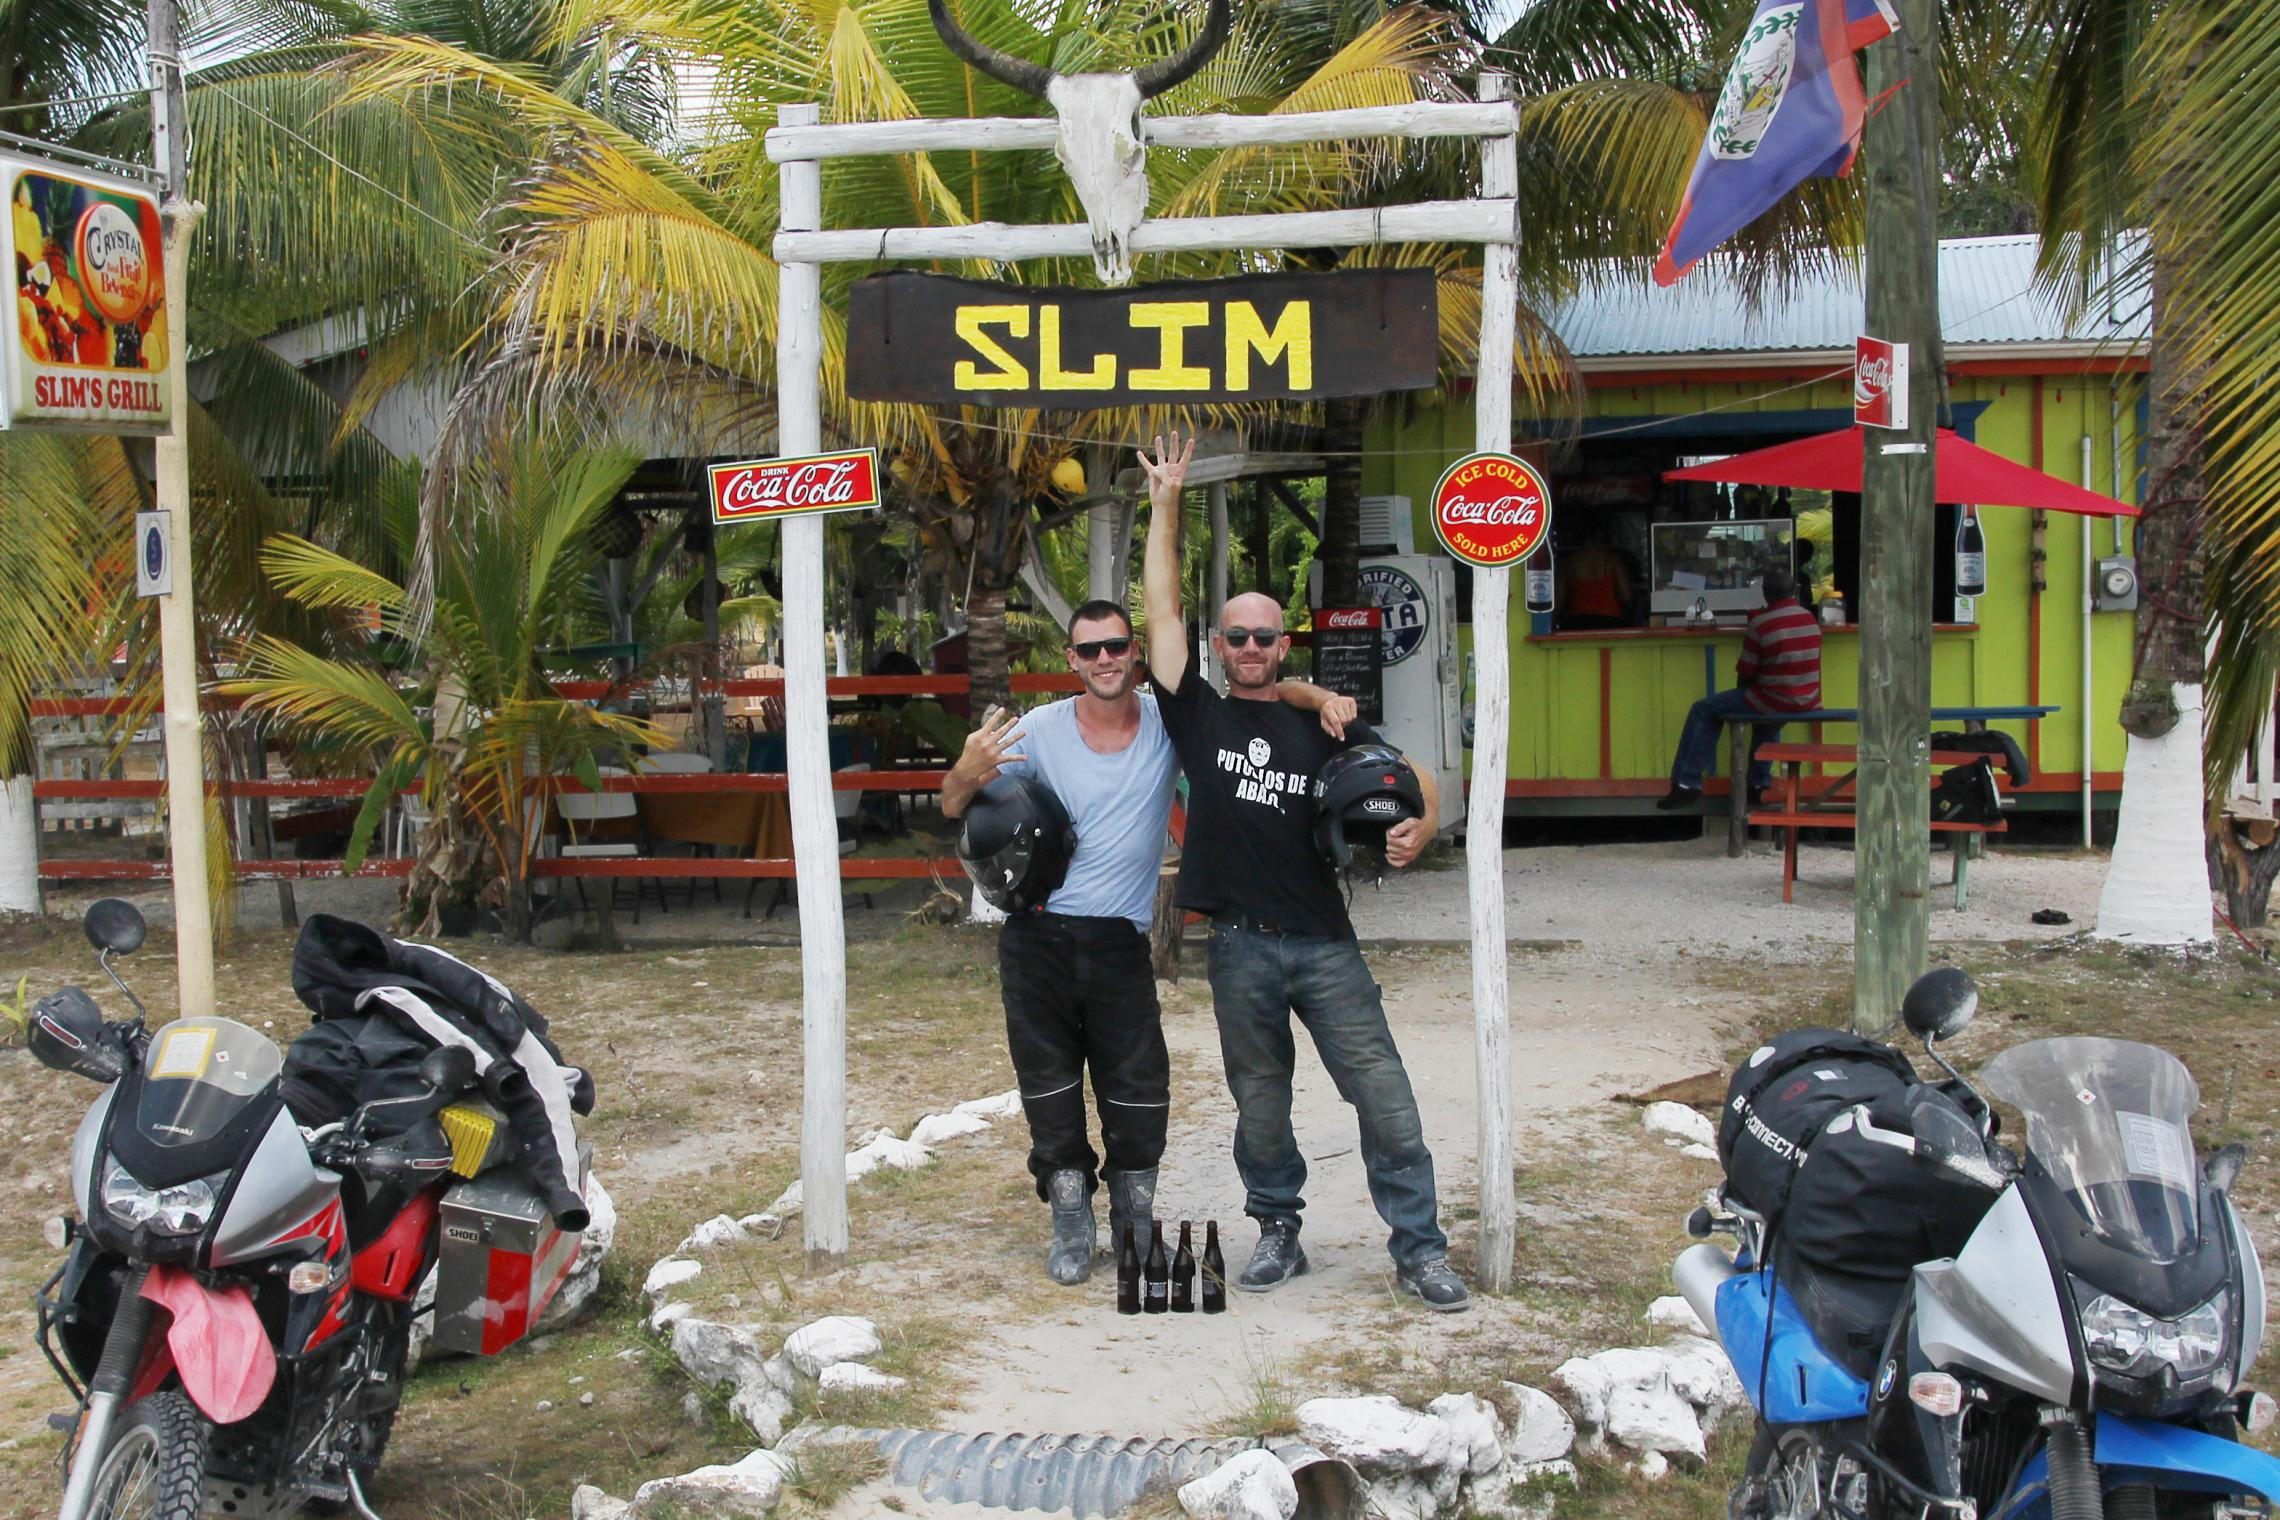 4,000 miles - The road to the Guatemalan border, Belieze -- Outside Slim's, a pitstop for overland travelers